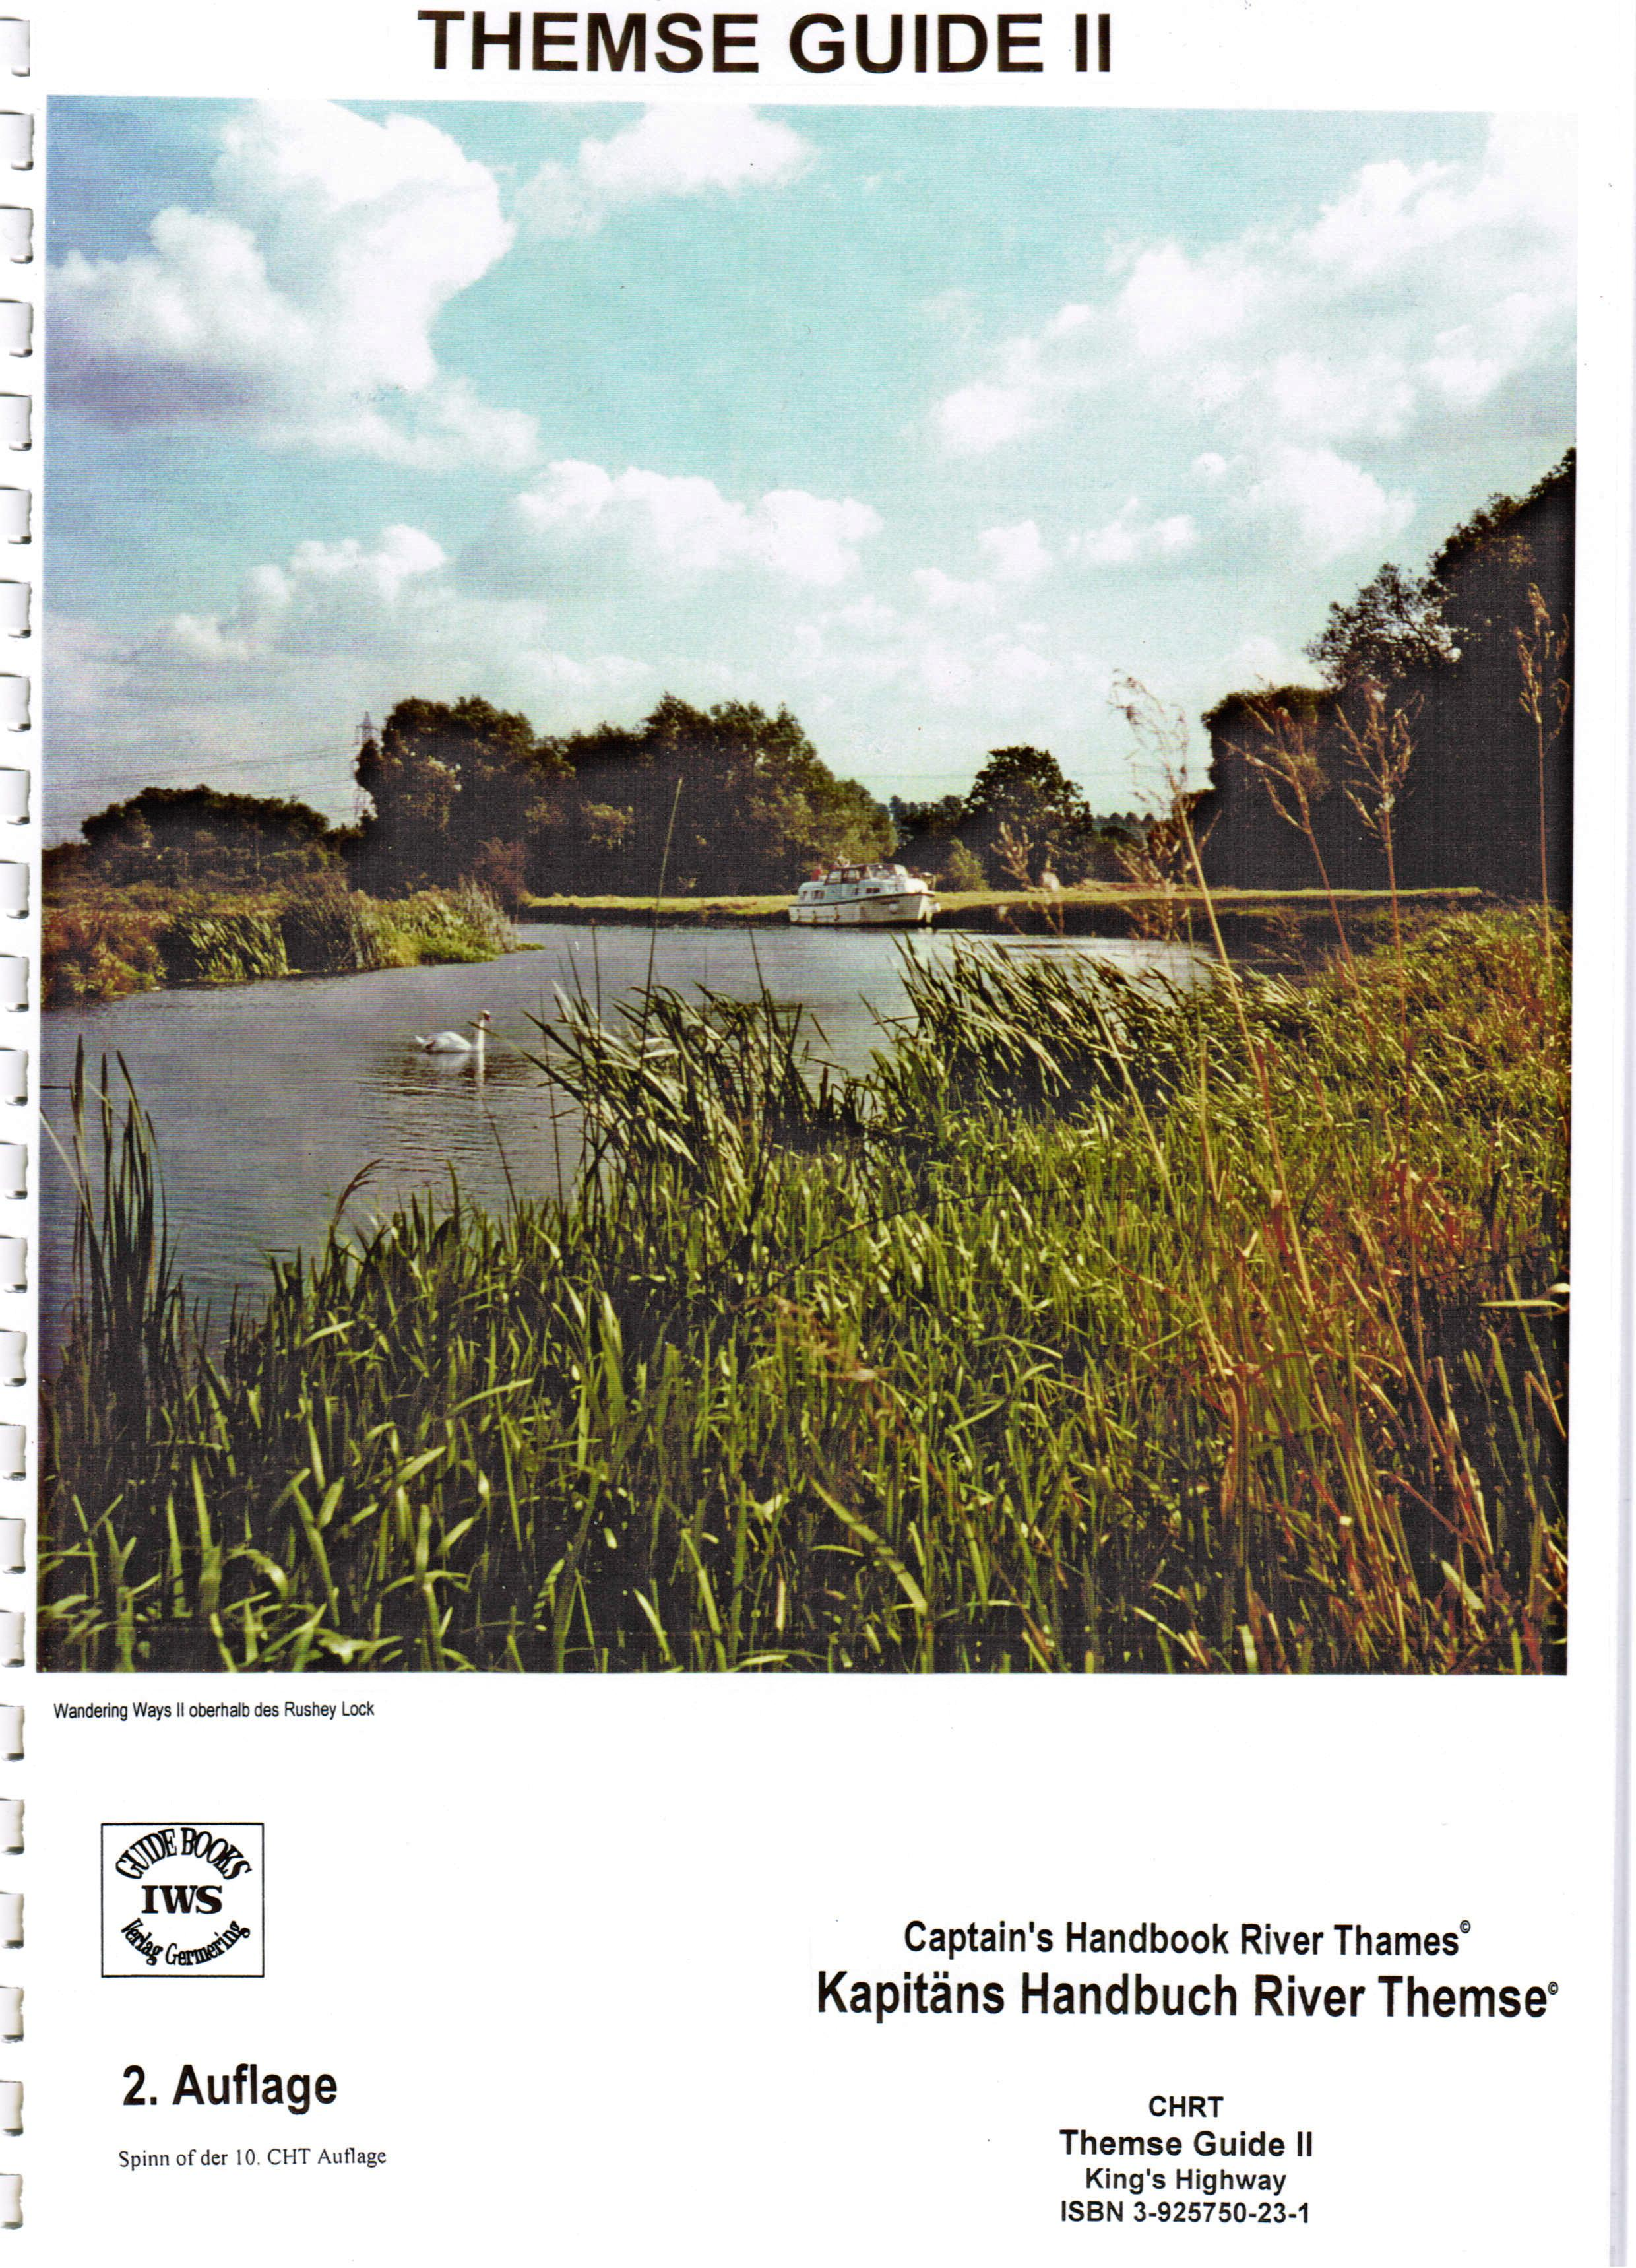 River Thames (Themse), Thames Guide (c) IWS Verlag, Inland Waterways Service (IWS)